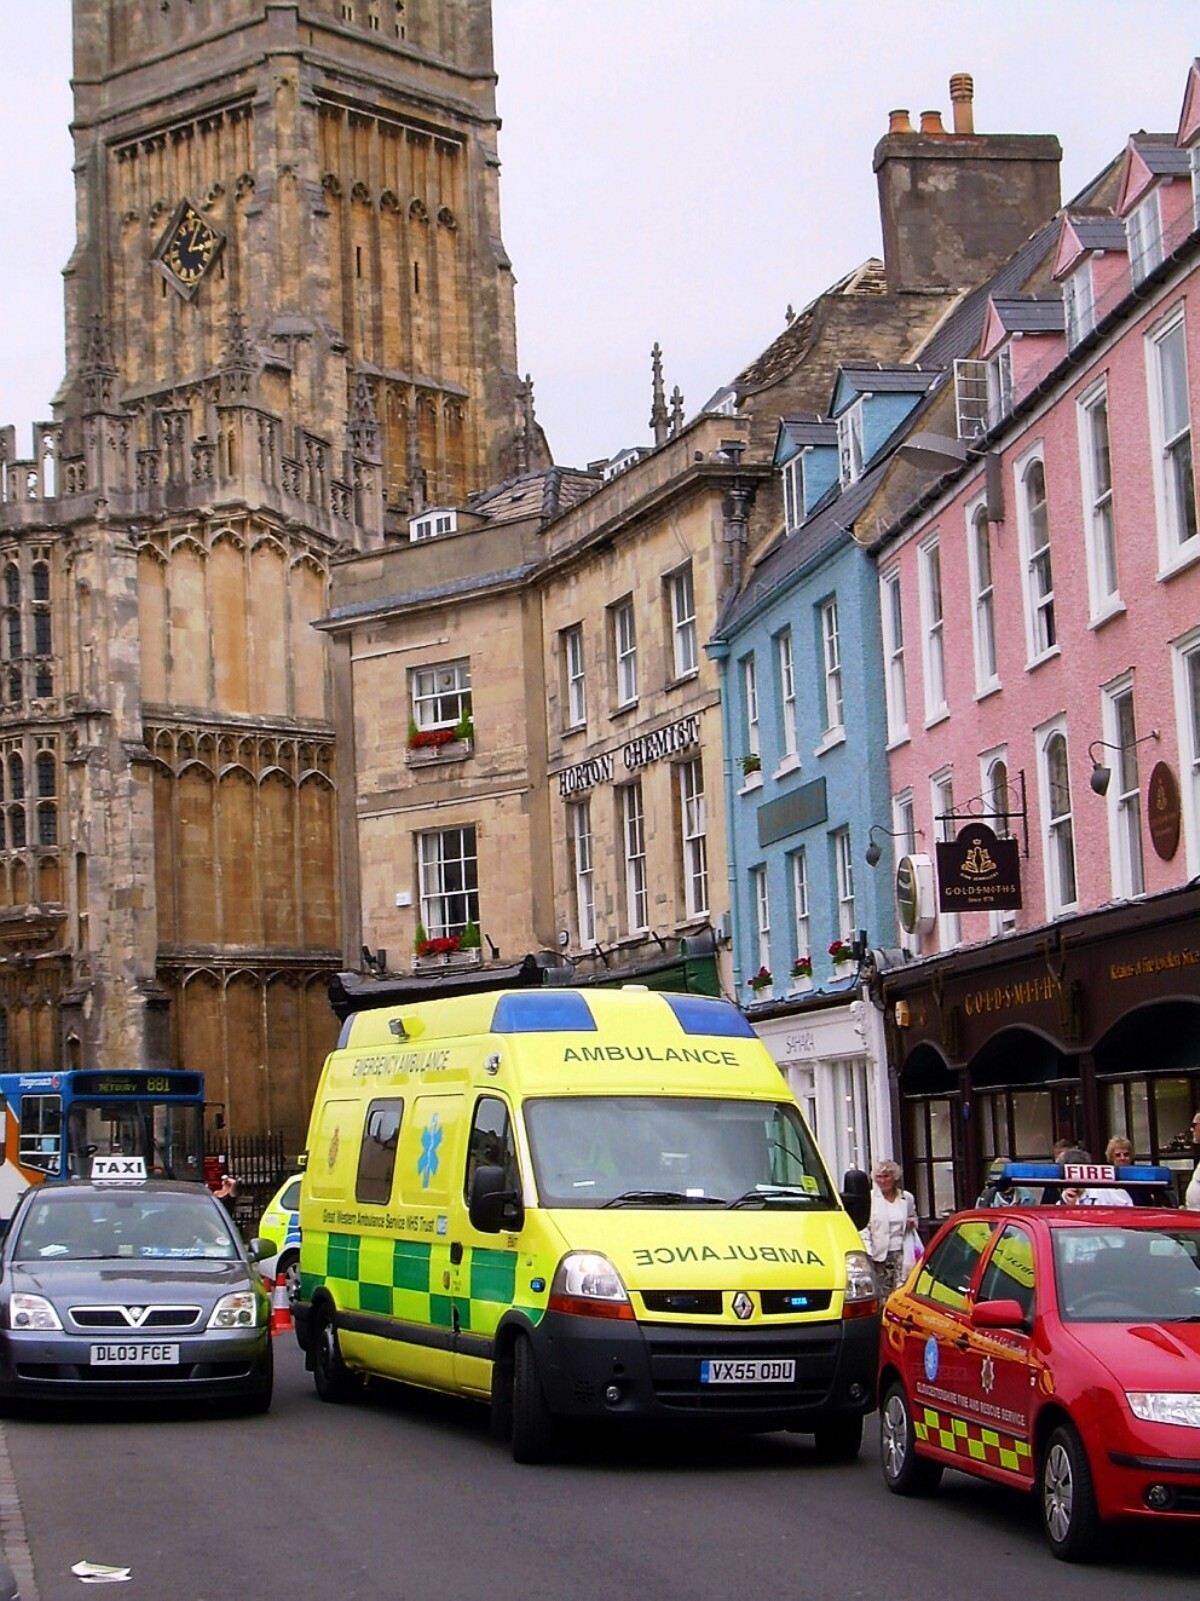 Cotswold District Council to put pressure on ambulance service over poor response times